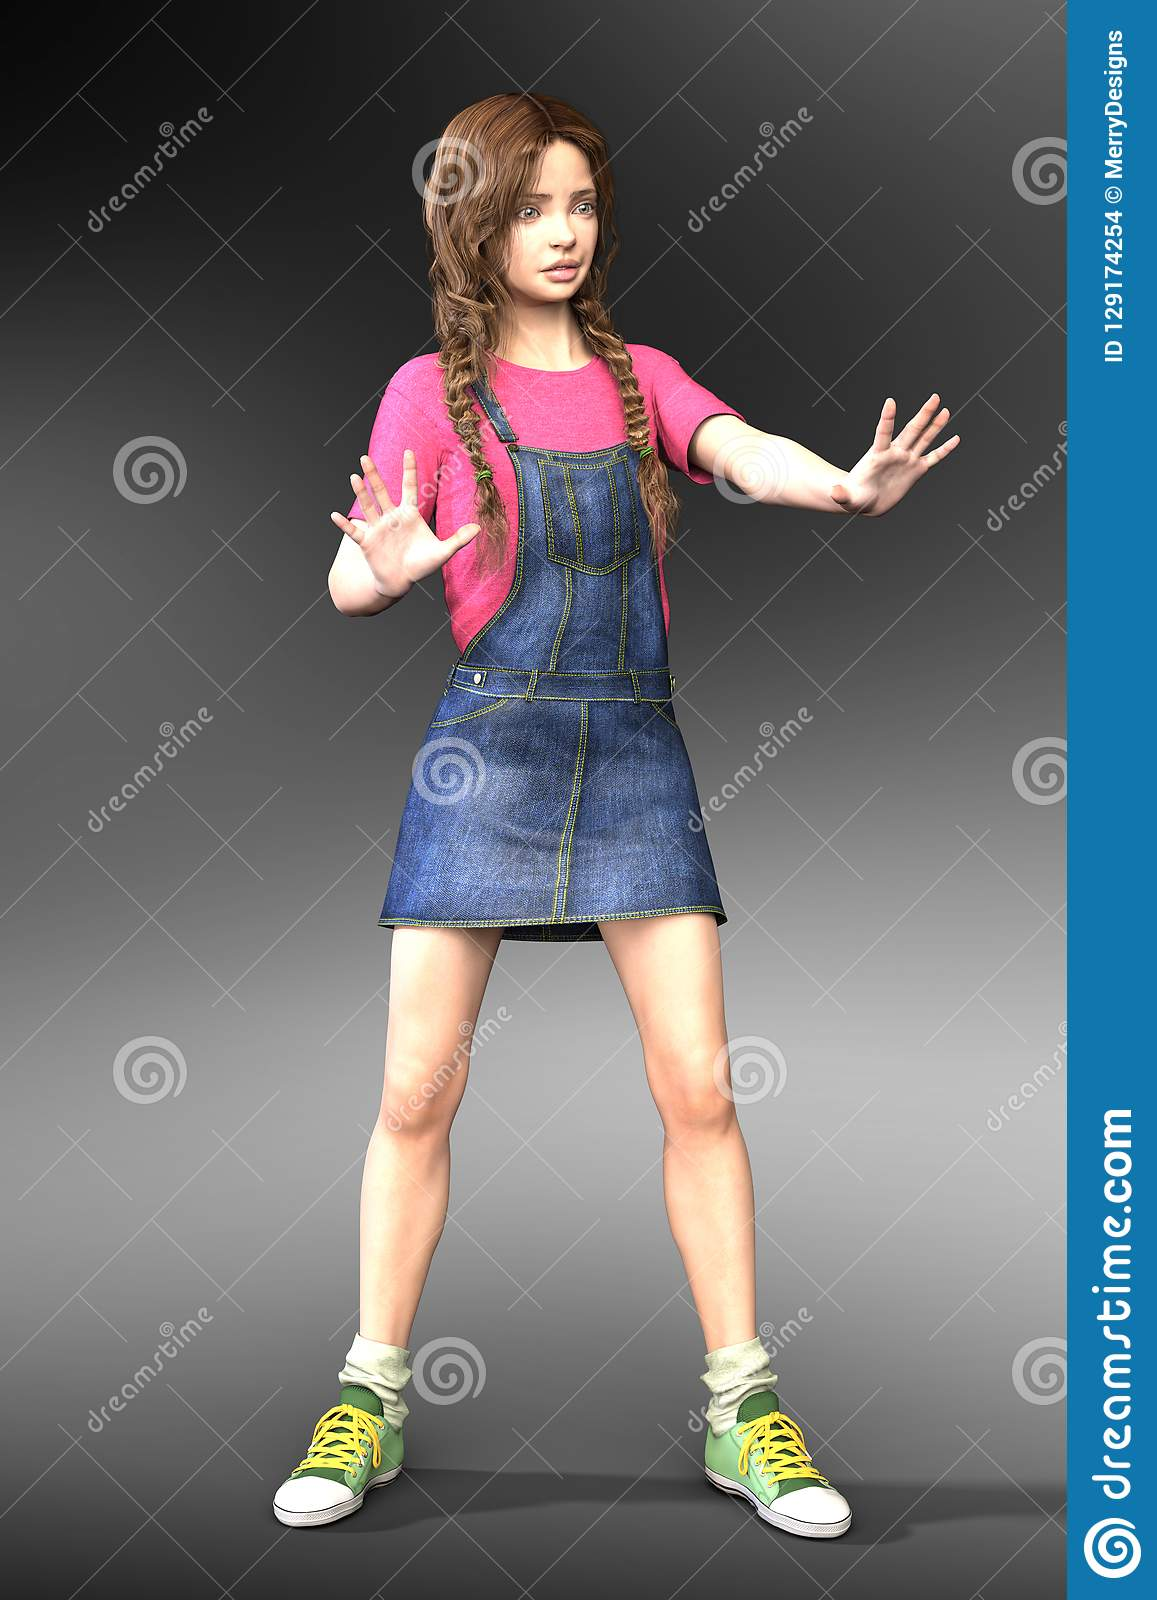 3D Young Teen or Child Character